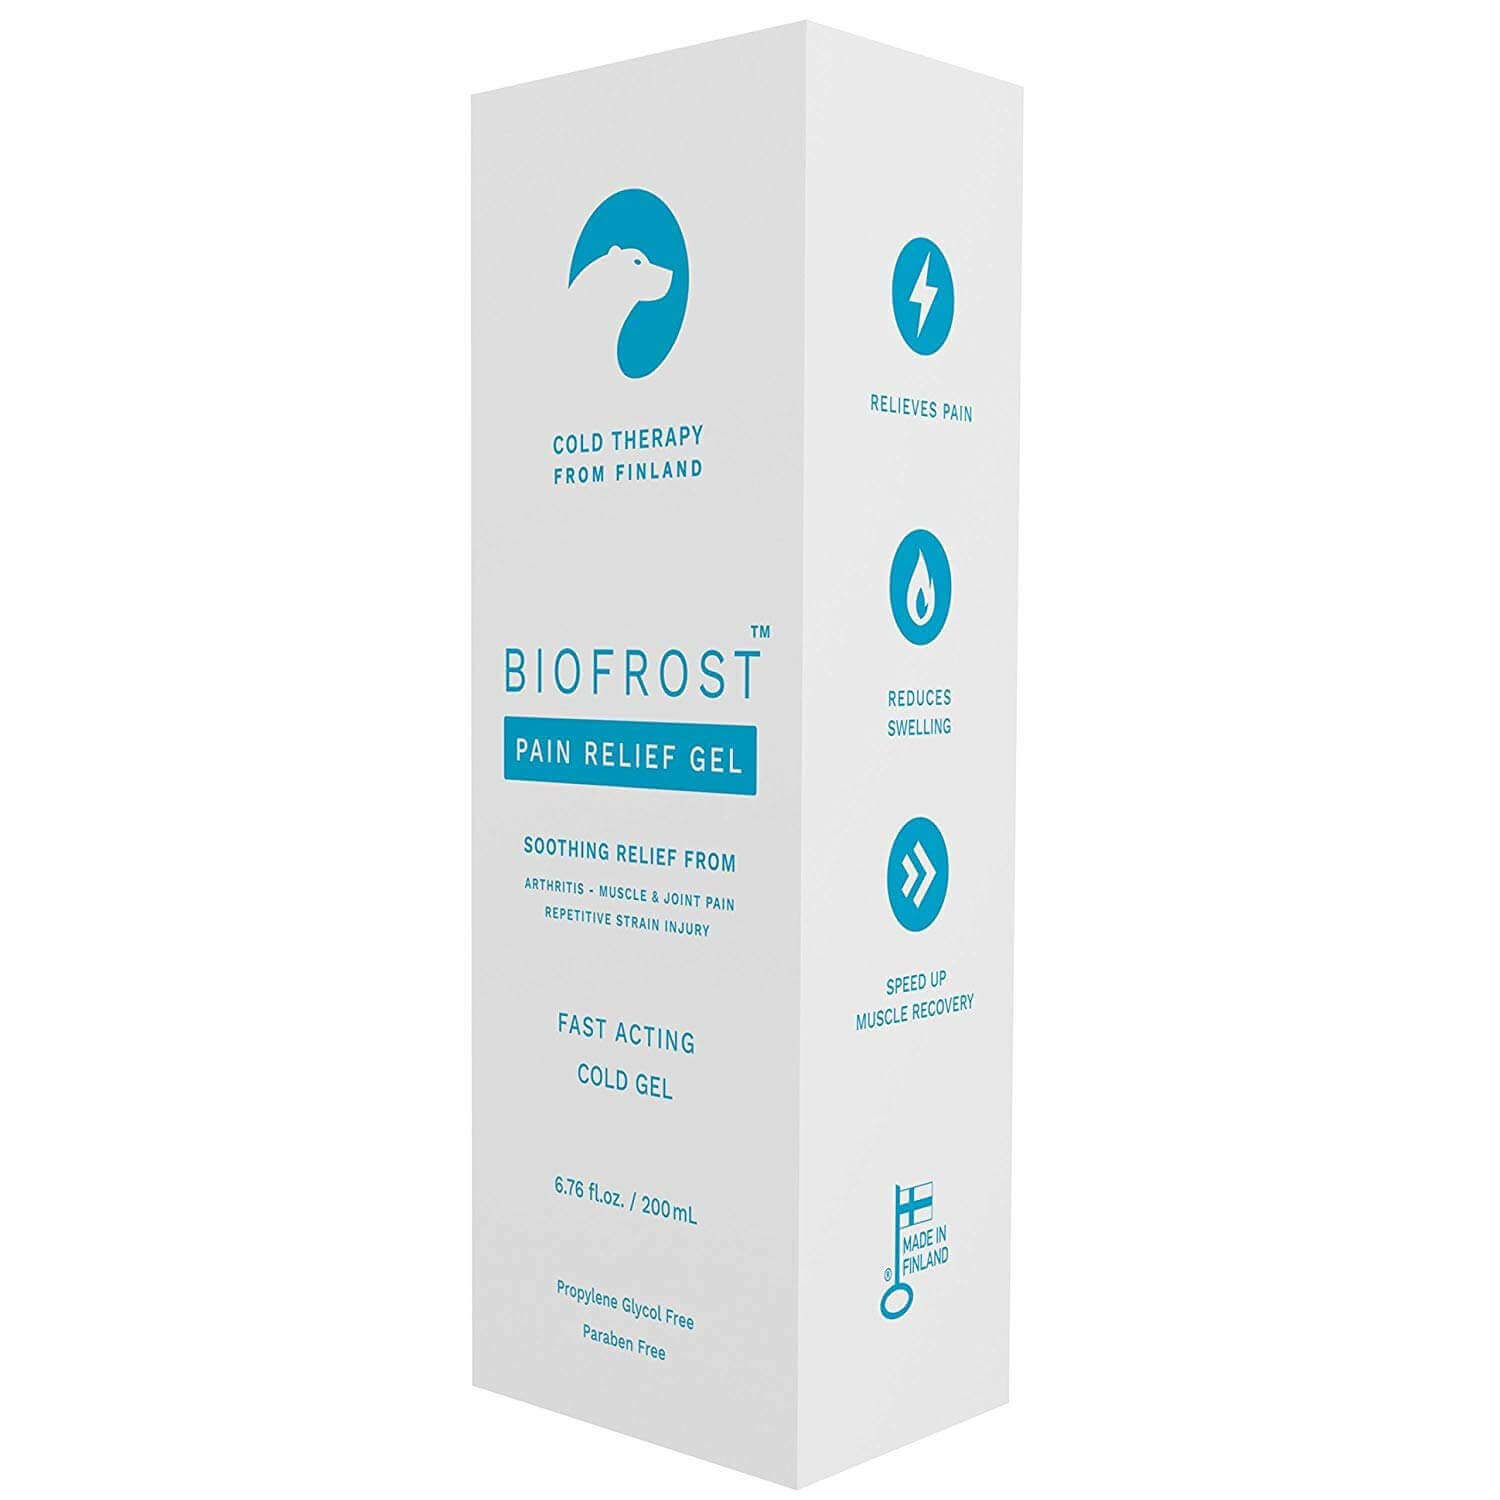 biofrost pain relief cold gel retail package